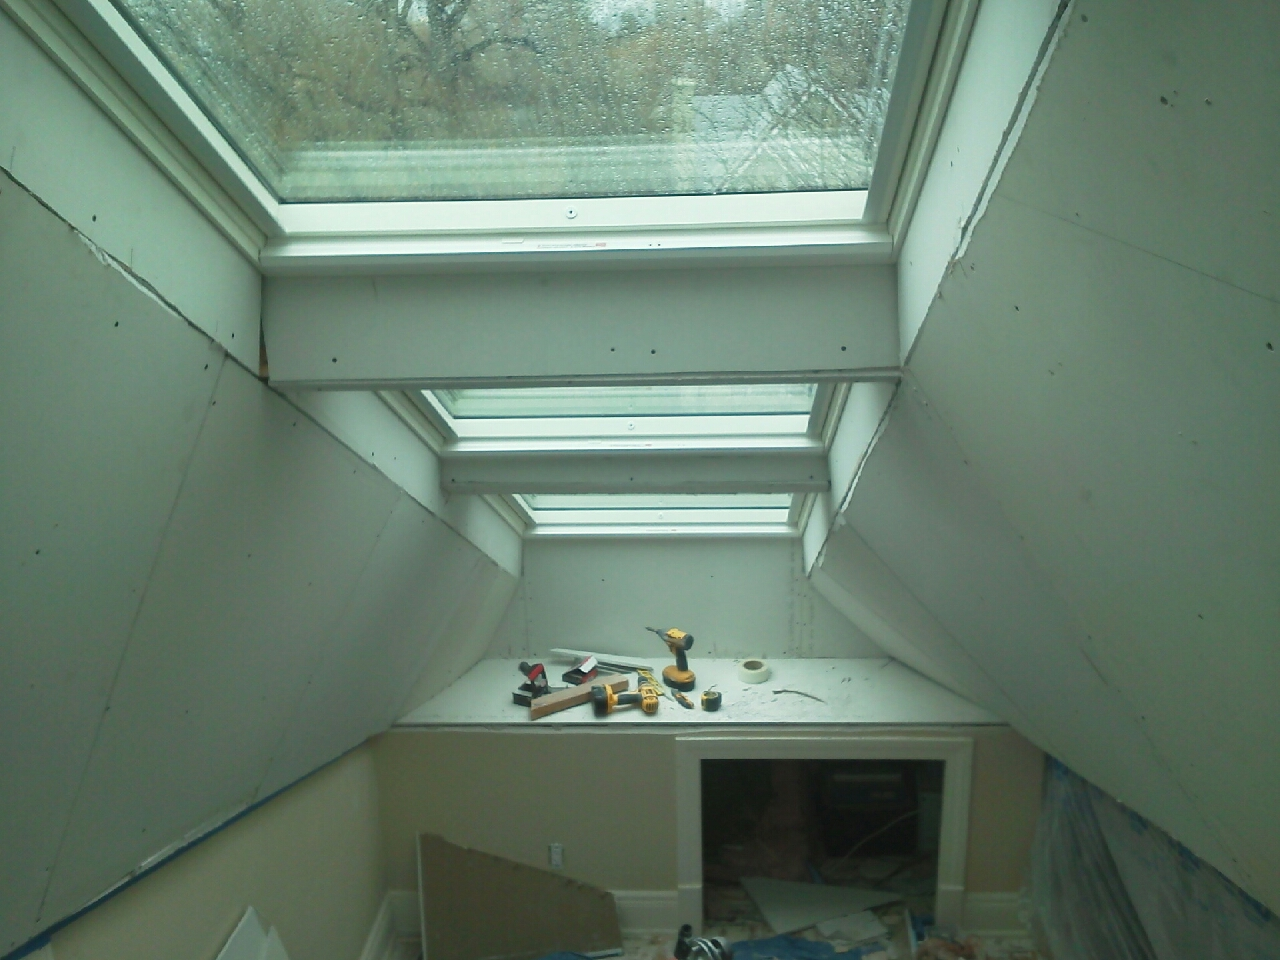 Drywall Flare-7 Skylights installed in attic